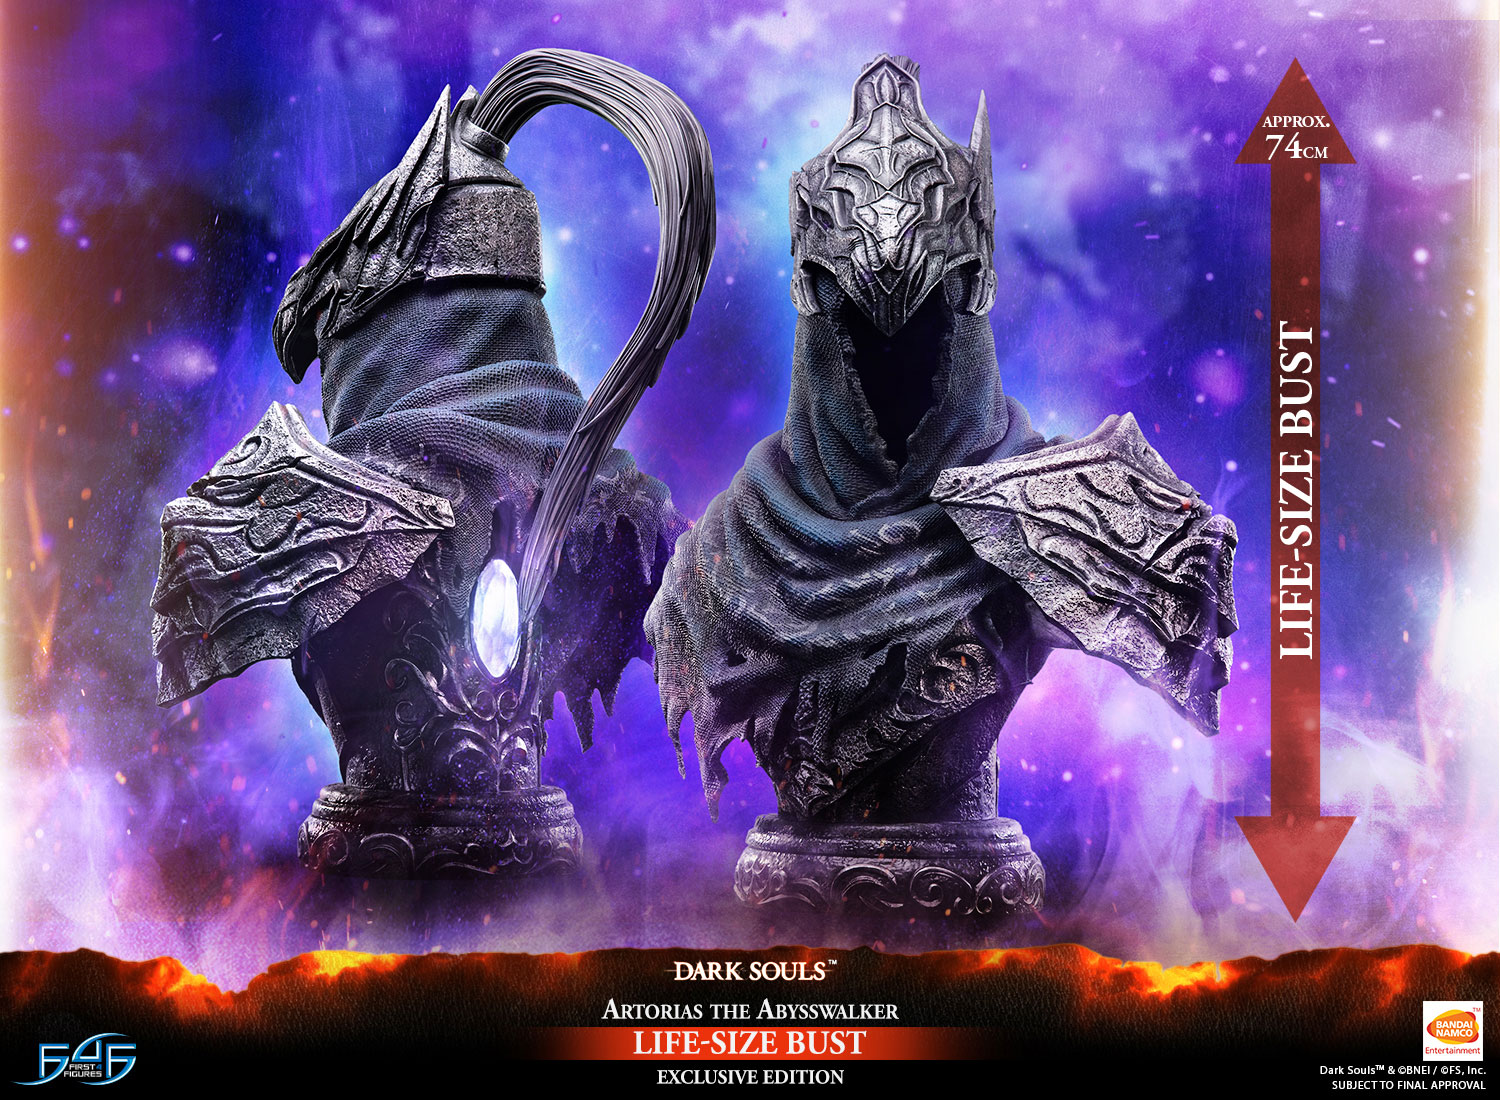 Artorias the Abysswalker Life-Size Bust (Exclusive Edition)